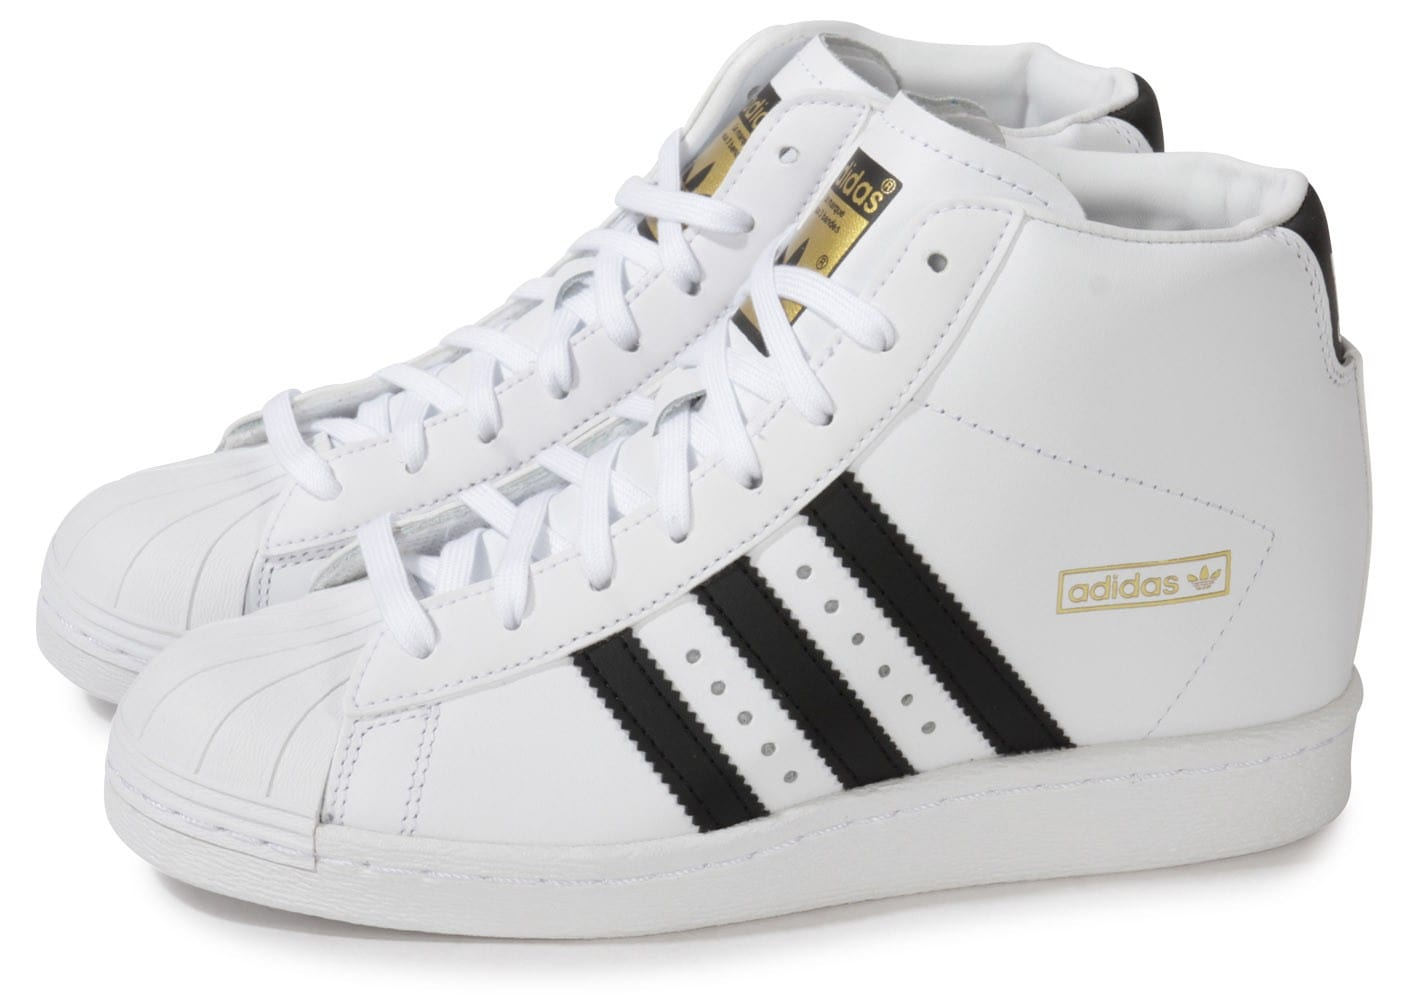 adidas Superstar Up Compensee Blanche Chaussures adidas